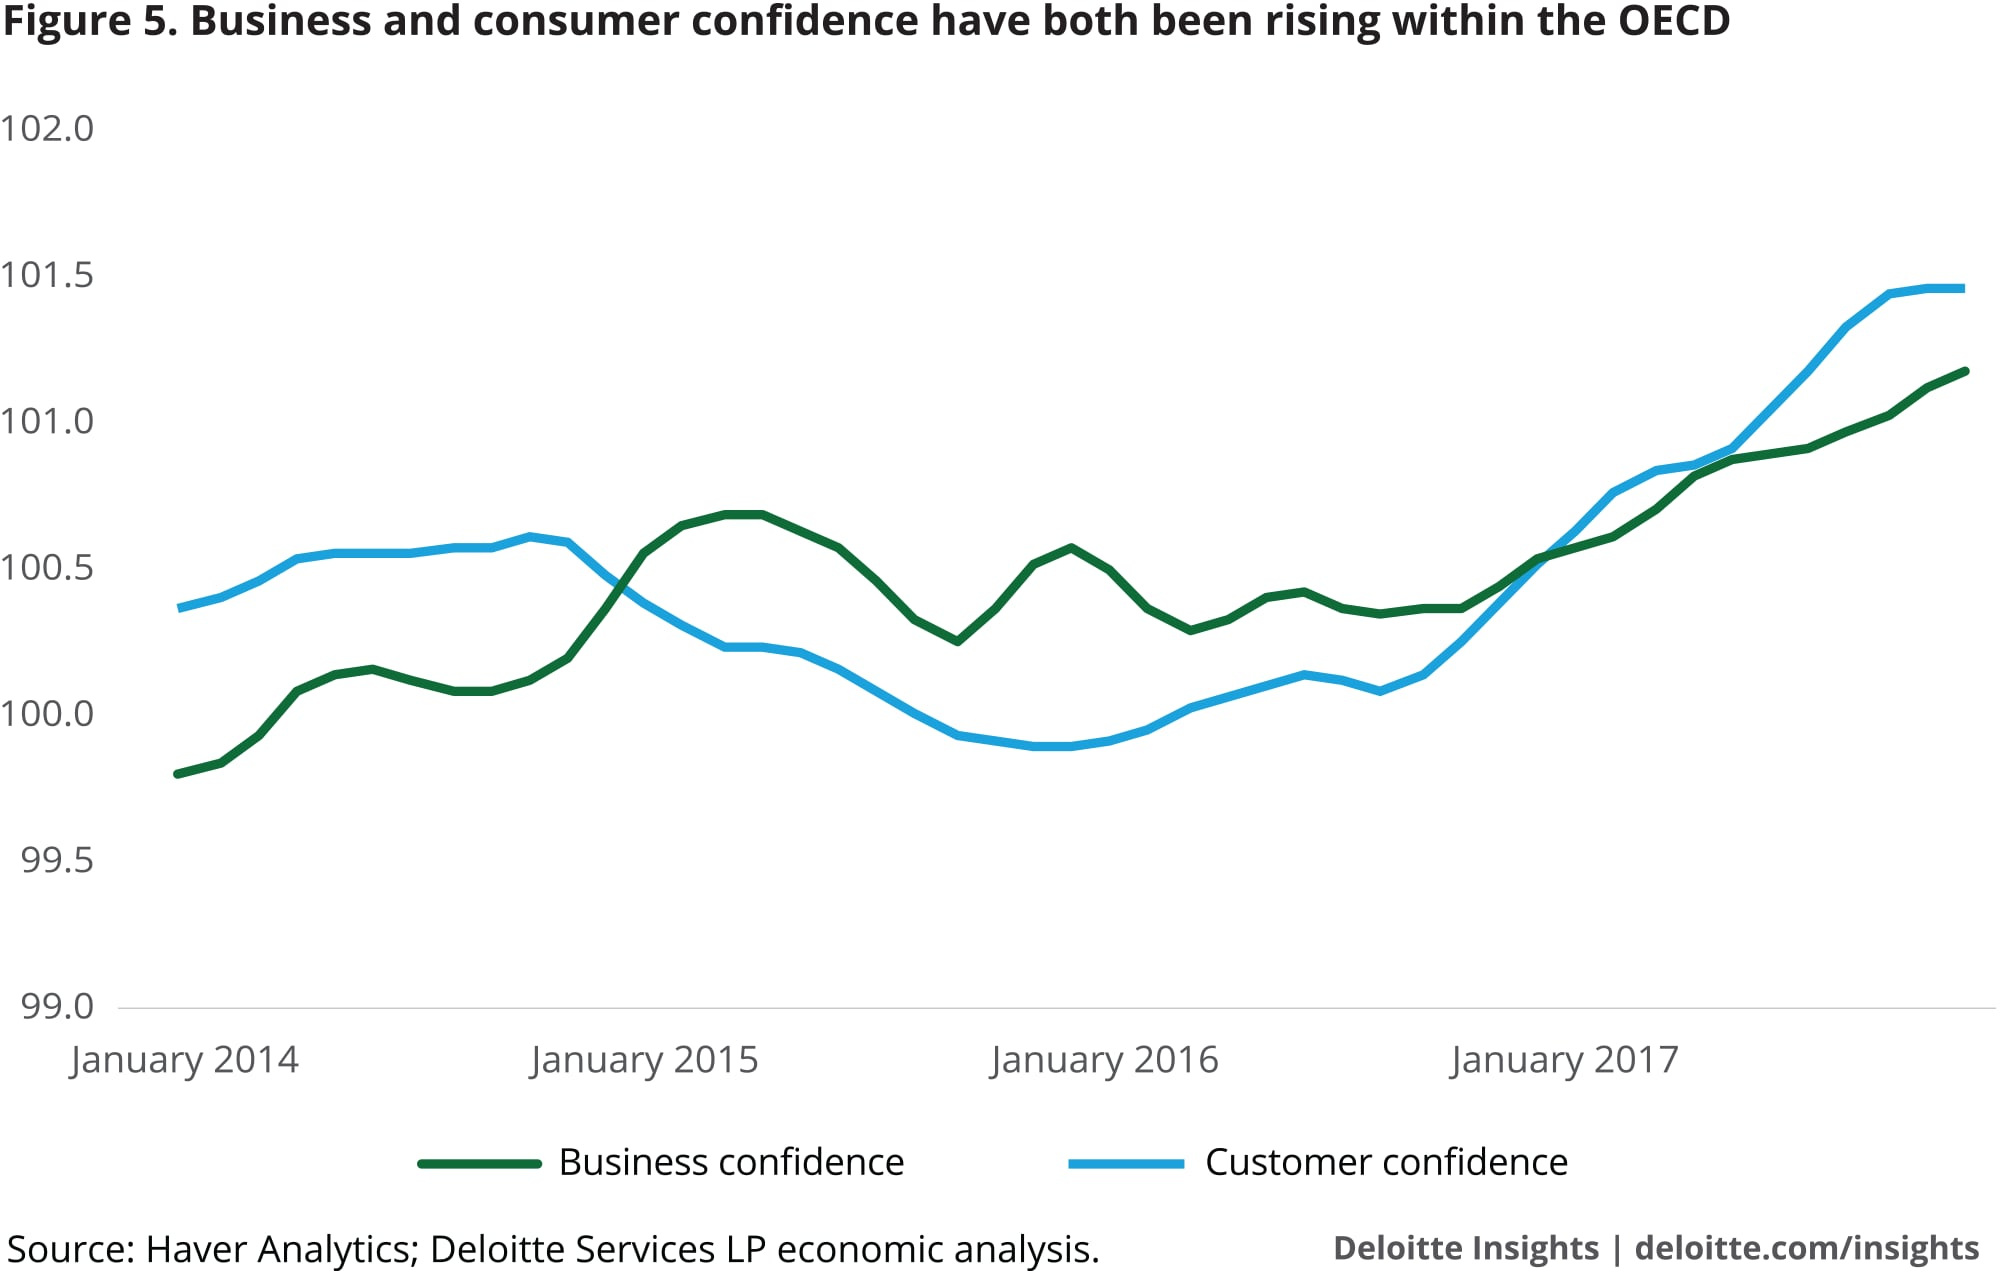 Business and consumer confidence have both been rising within the OECD